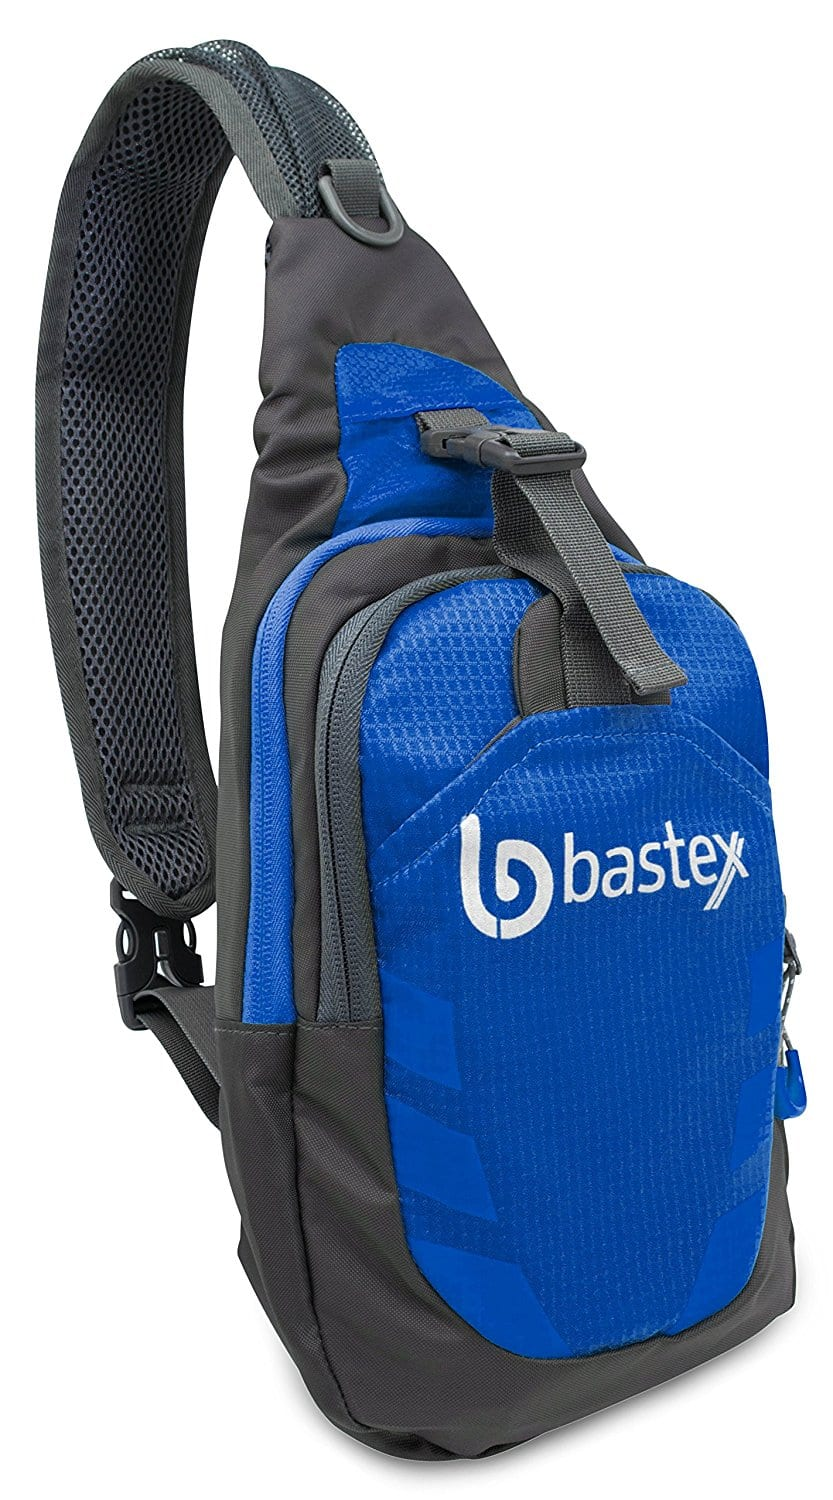 Bastex On the Go Shoulder Bag (Various Colors)  $4 + Free Shipping